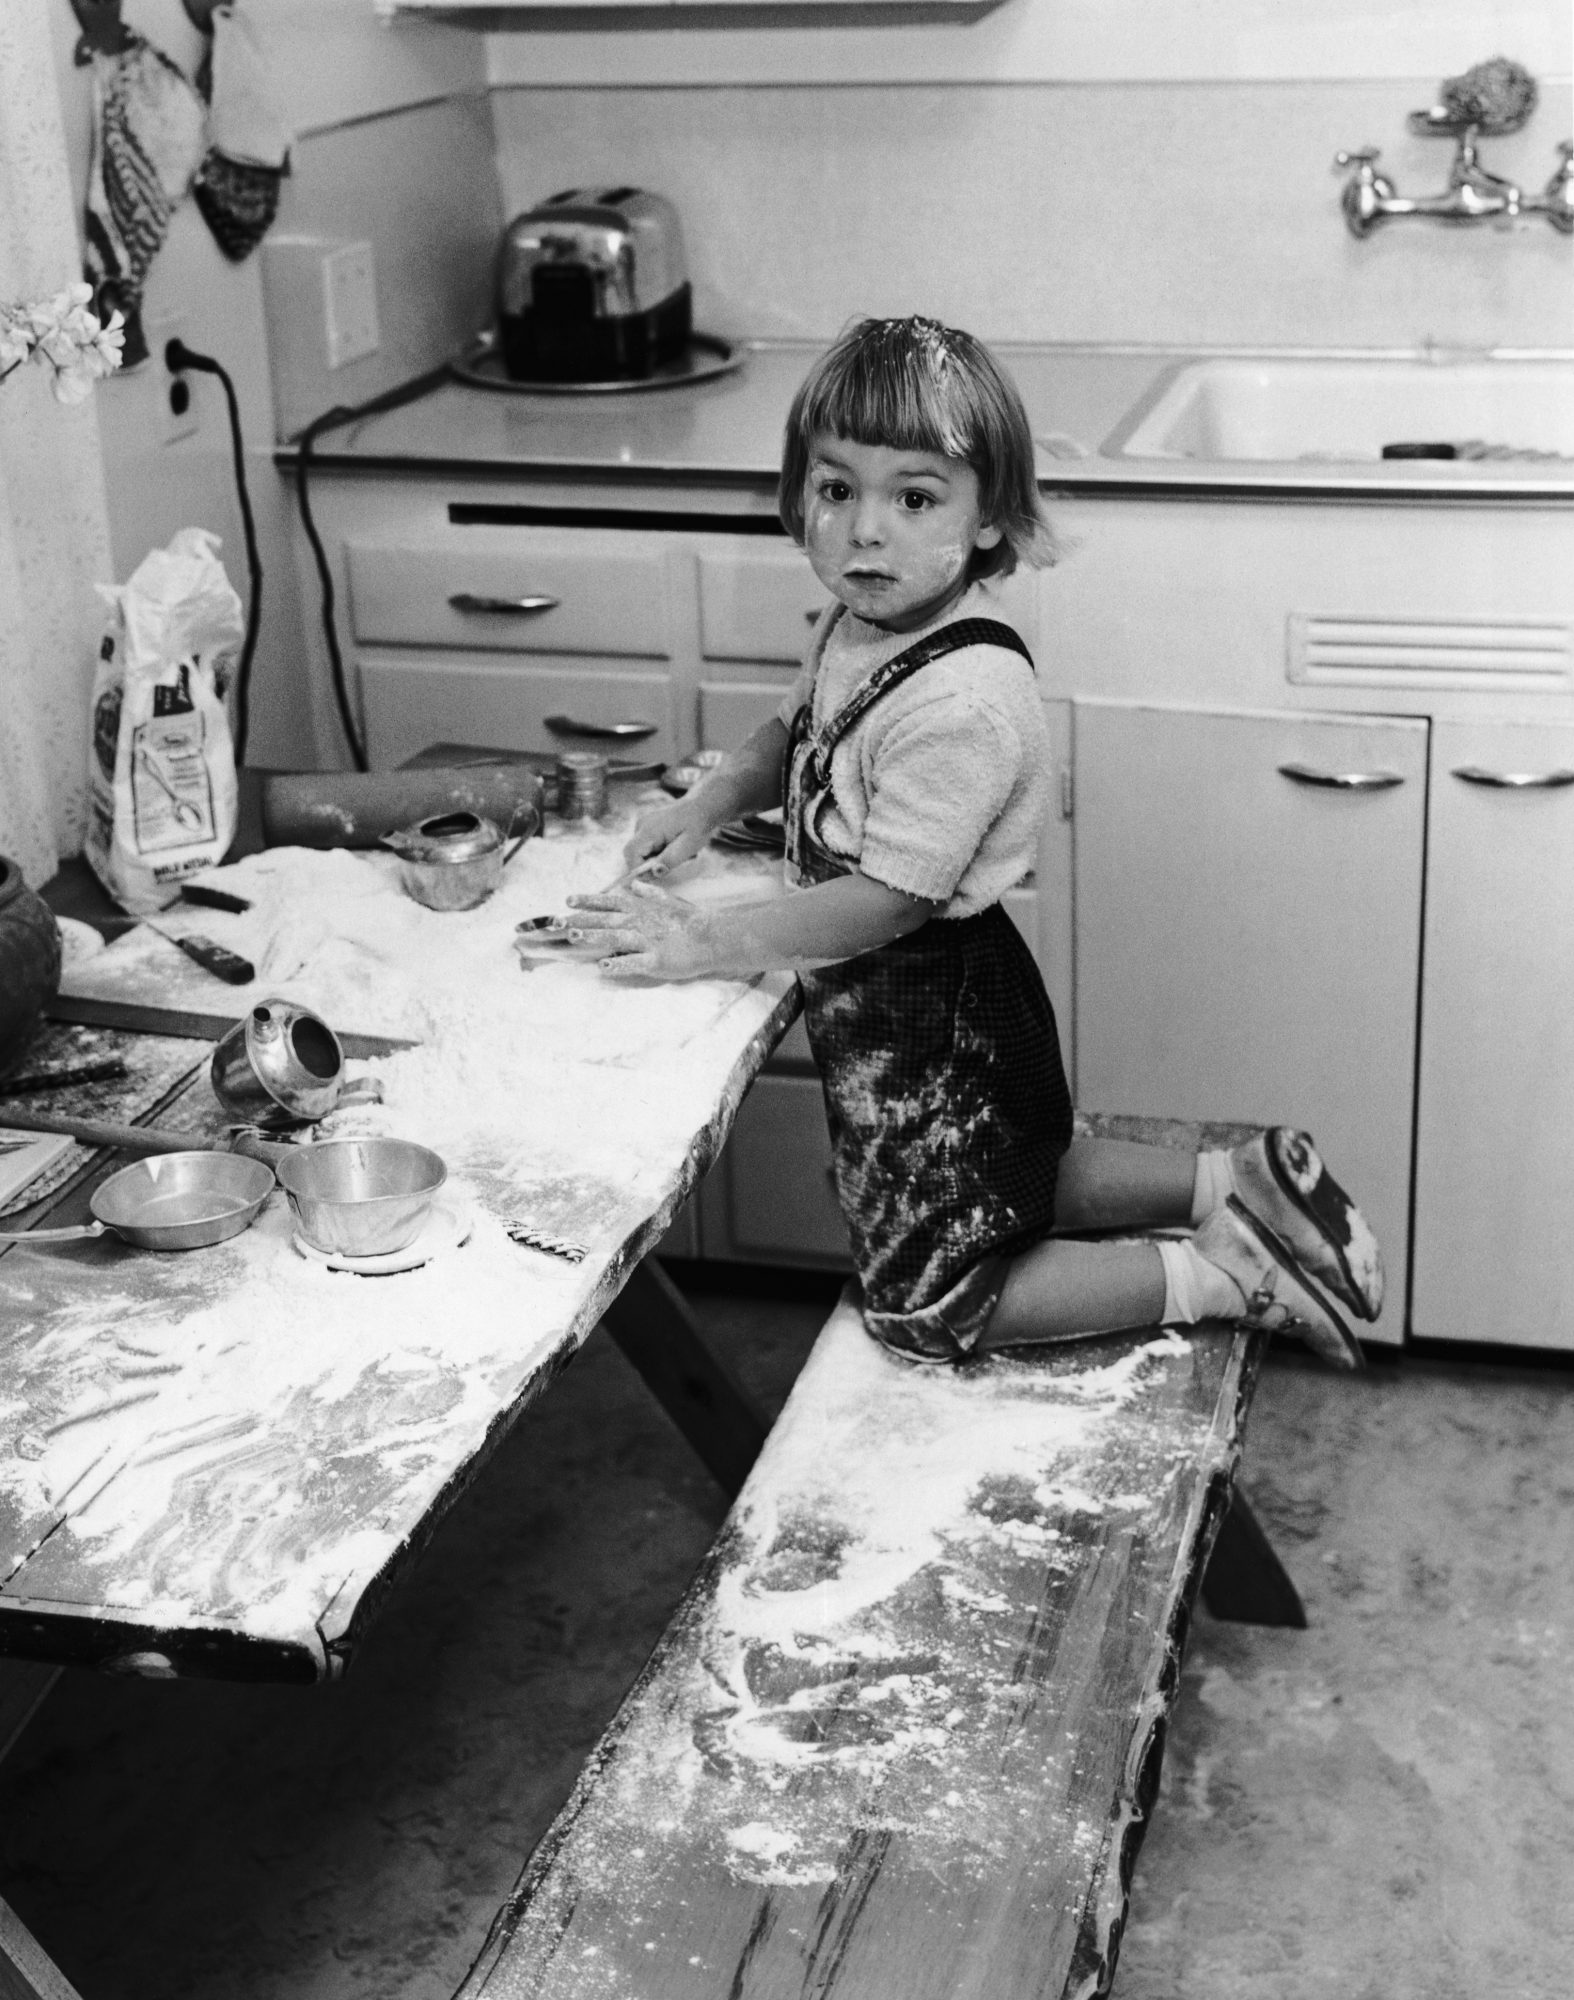 Toddler Baking with Flour Mess